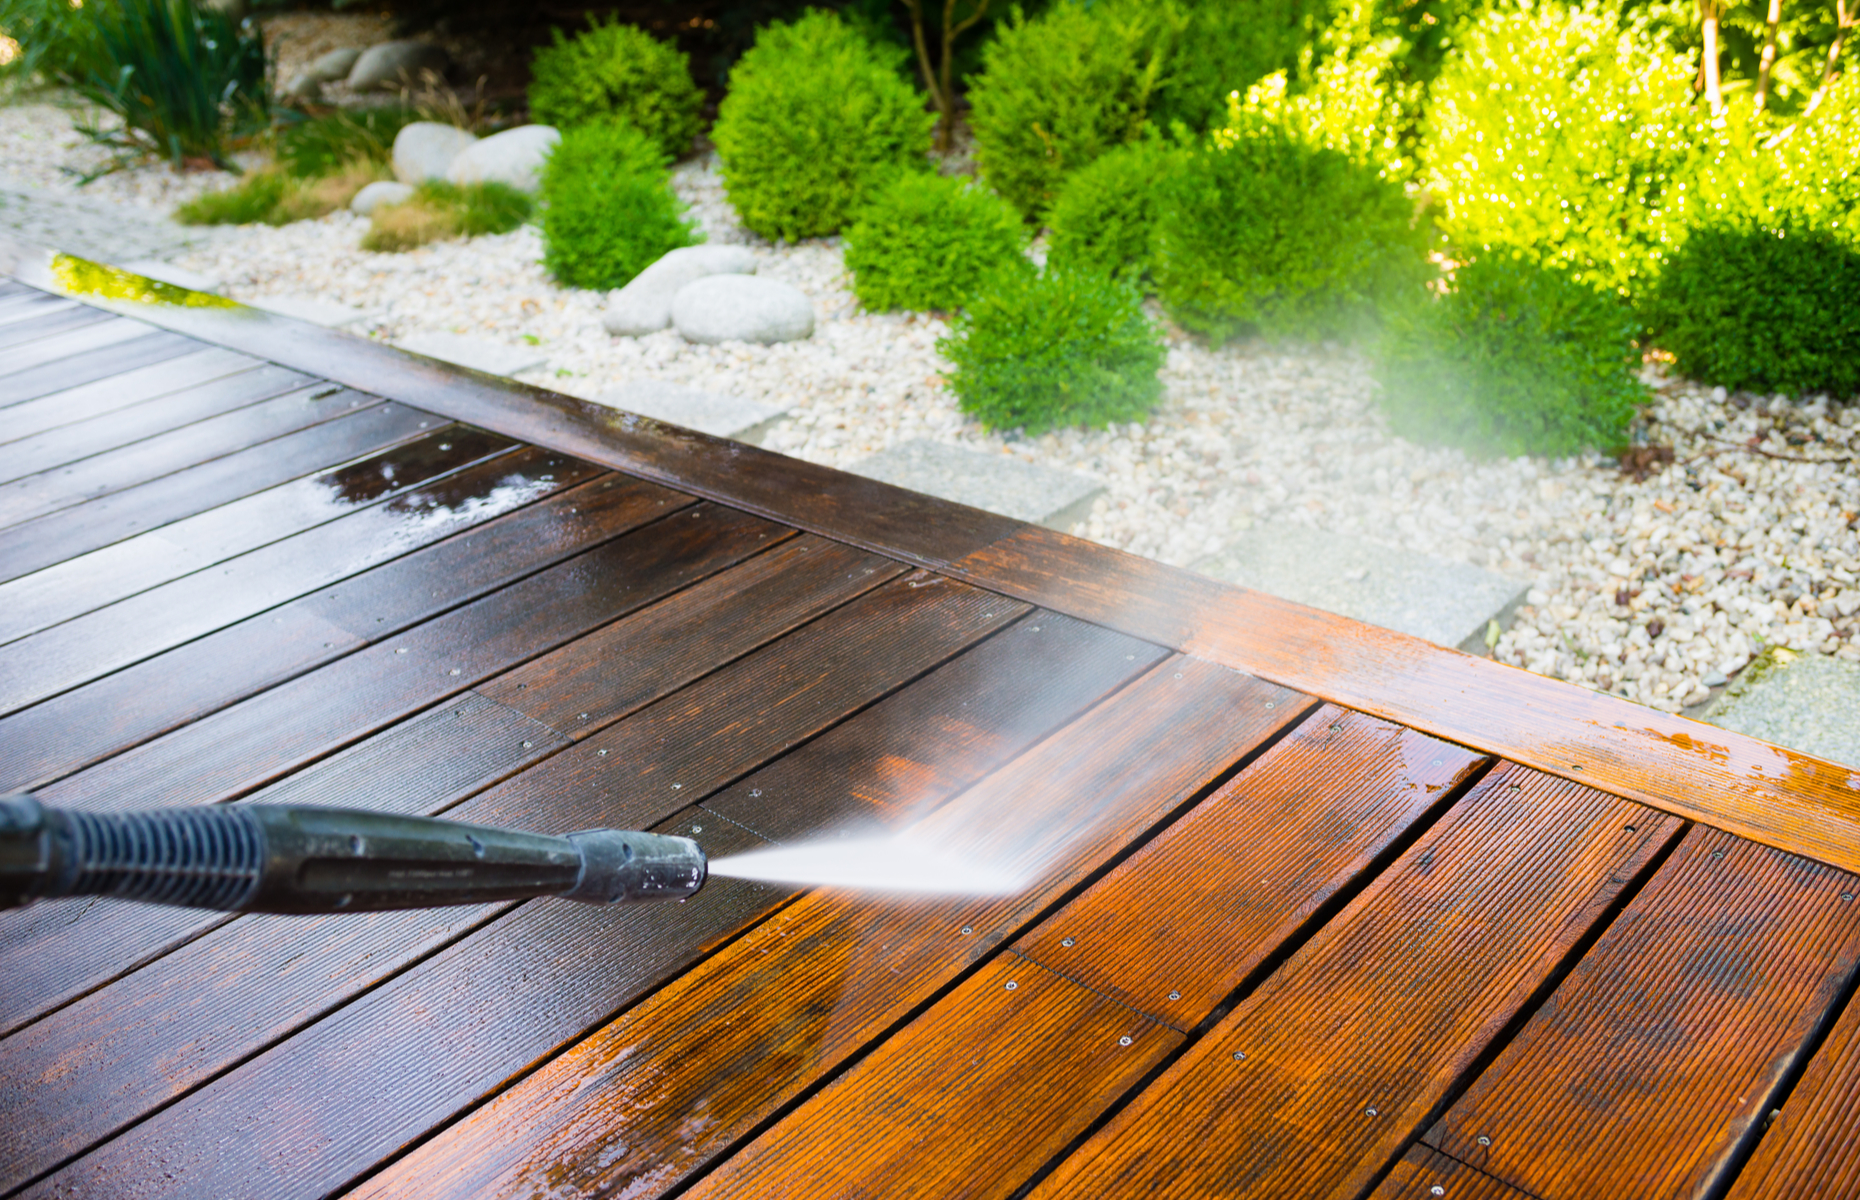 Regularly maintain your outdoor spaces to avoid big expenses later in the year. Image: bubutu / Shutterstock